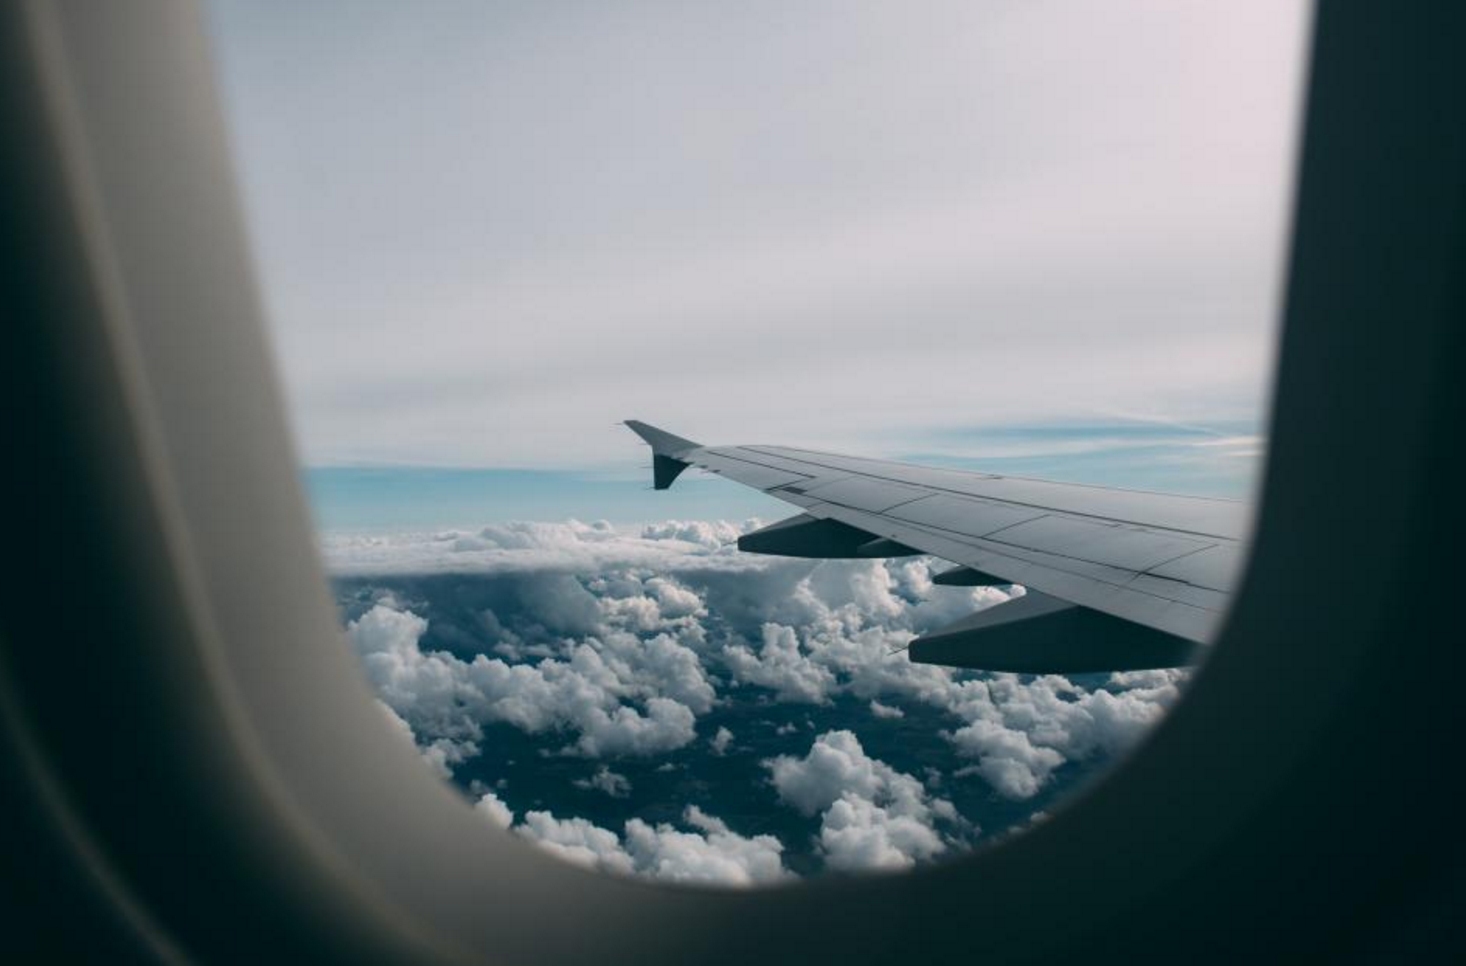 tips to travel better, travel tips, easier travel, travel hacks, airport style, celeb airport style, men's style, men's airport style, best luggage, best suitcase, travel like a local, eat like a local